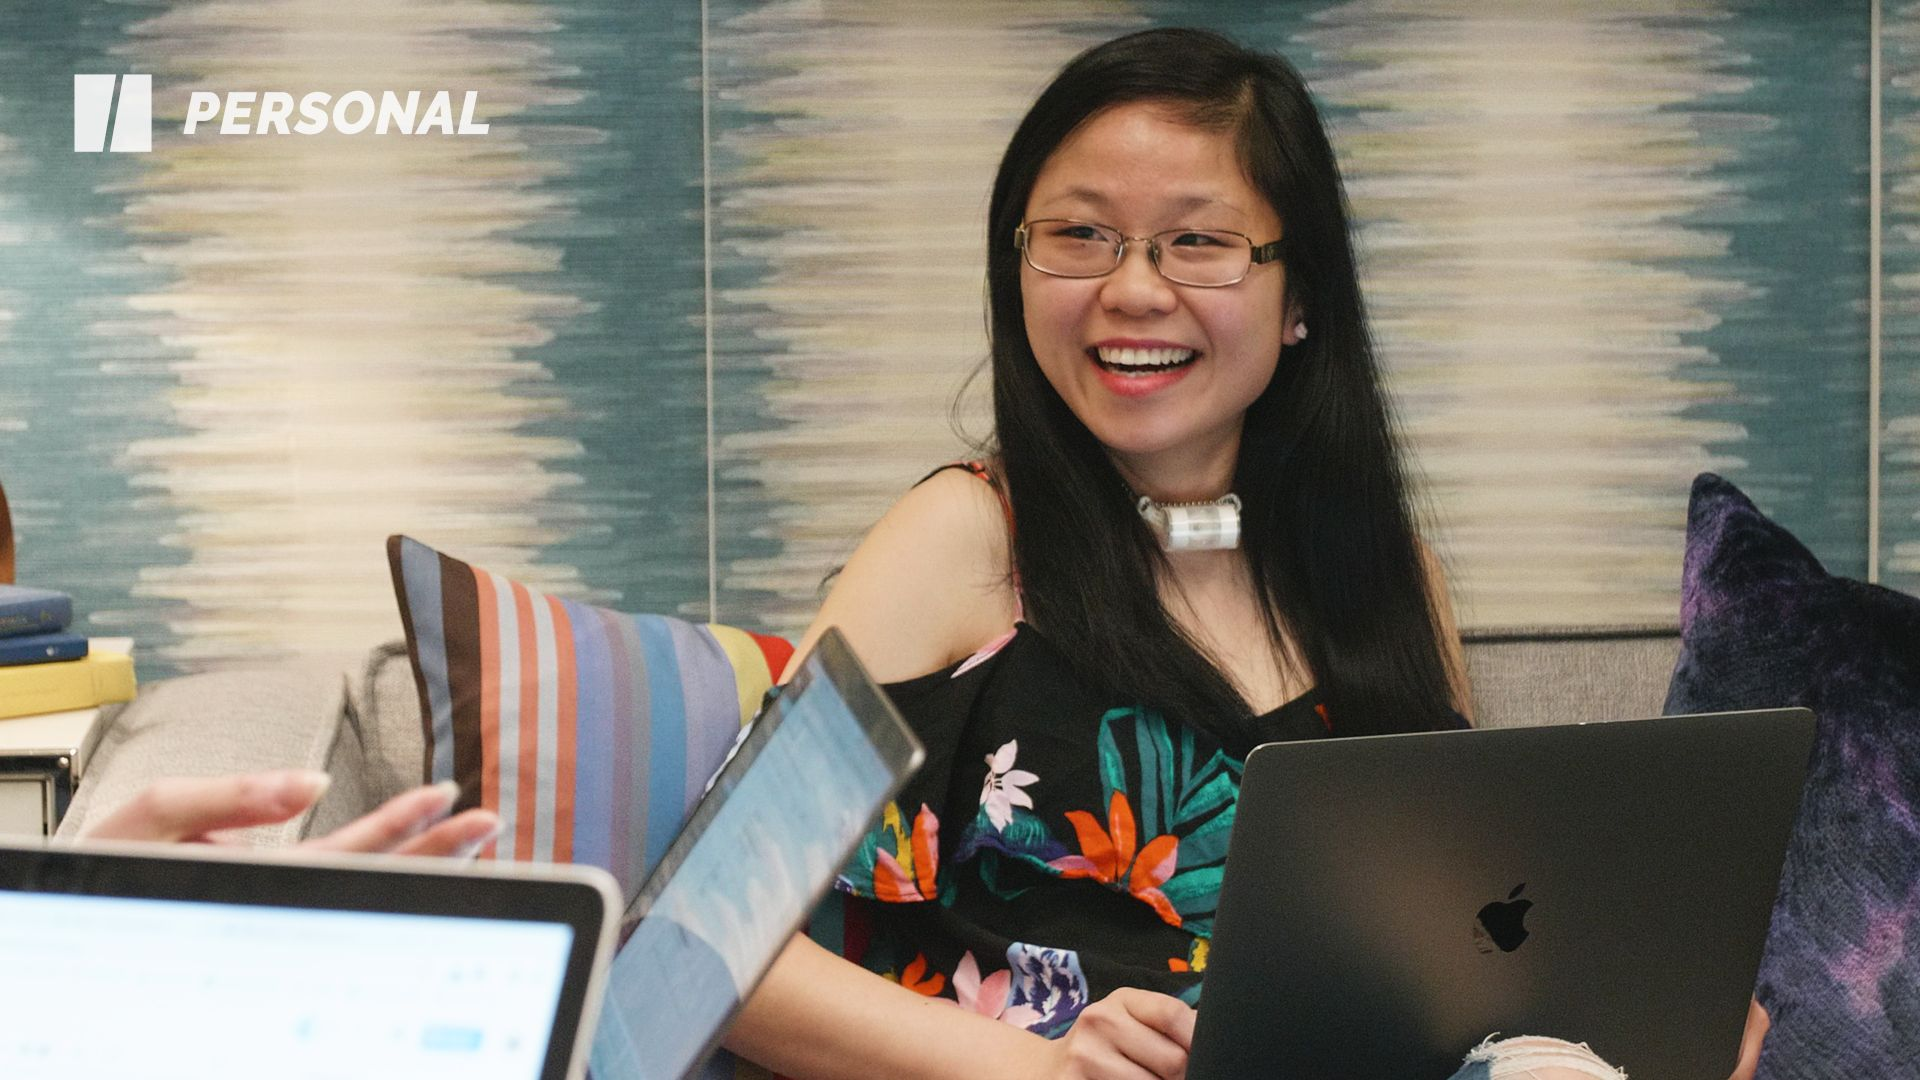 Wendy Lu, a young Asian American woman, sits and smiles on a couch with a colorful pillow nearby in front of a blue and white background.